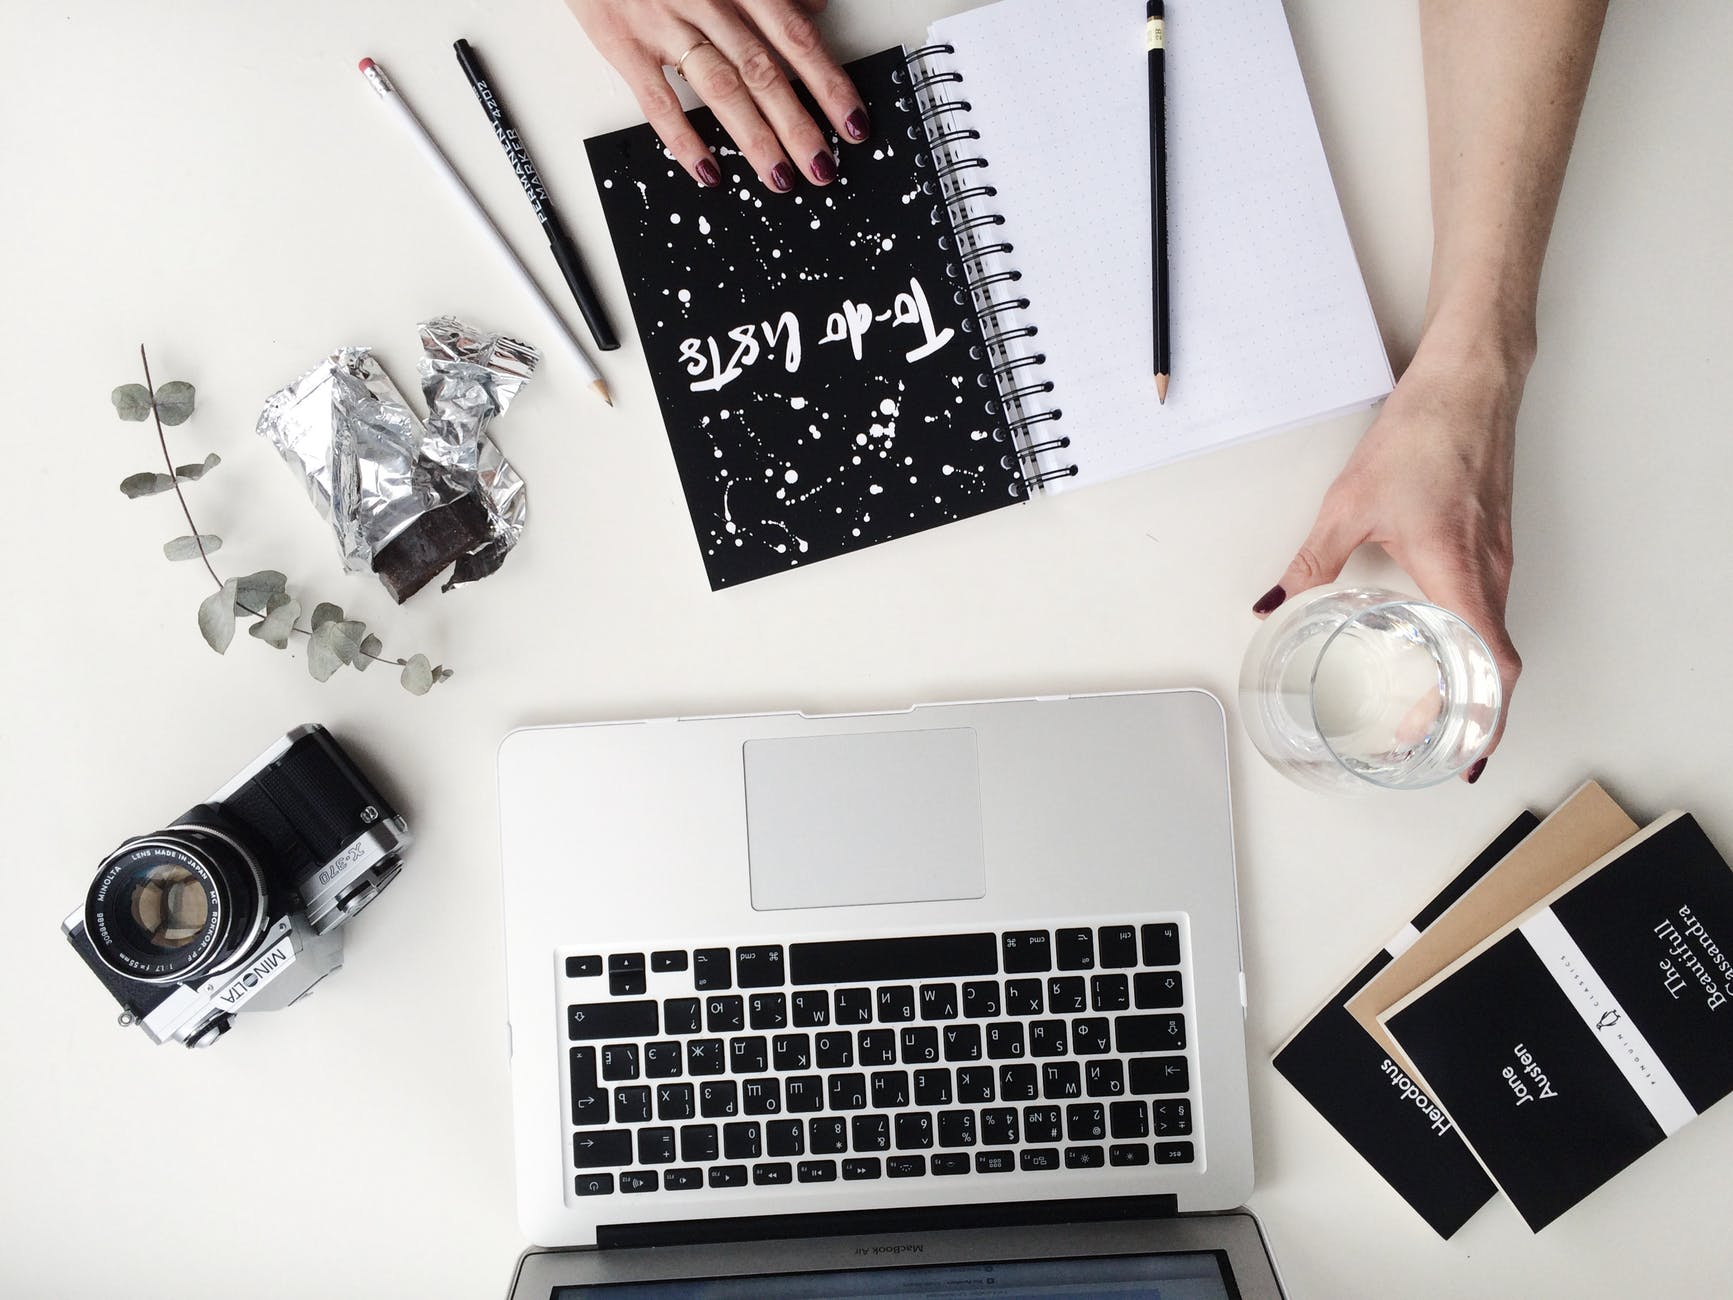 25+ Web Resources to Help You Build Your Projects